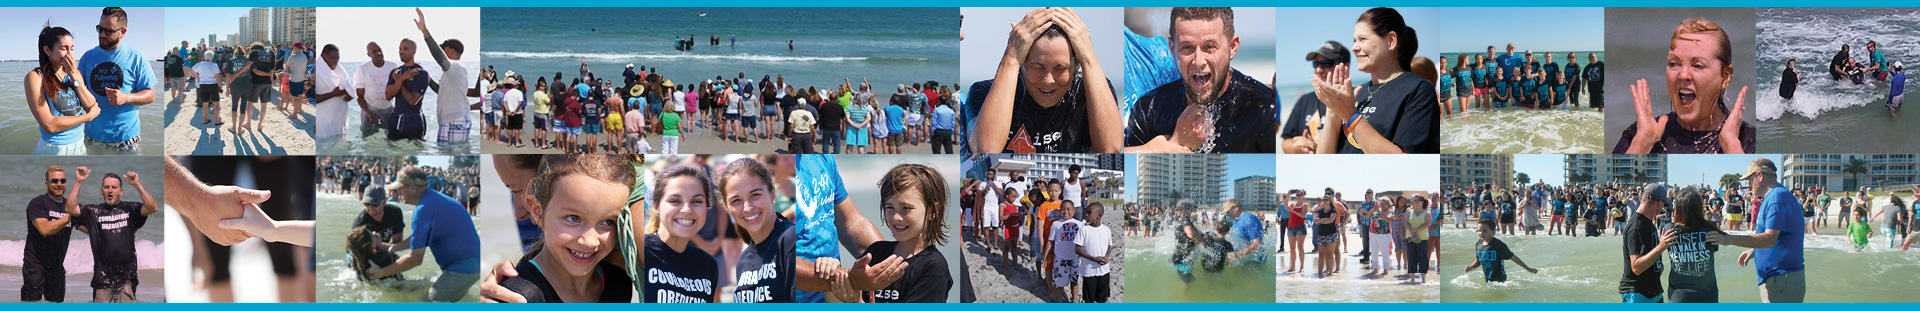 Beach Baptisms in Florida • Acts 2:41 Sunday • Baptizing Coast-to-Coast